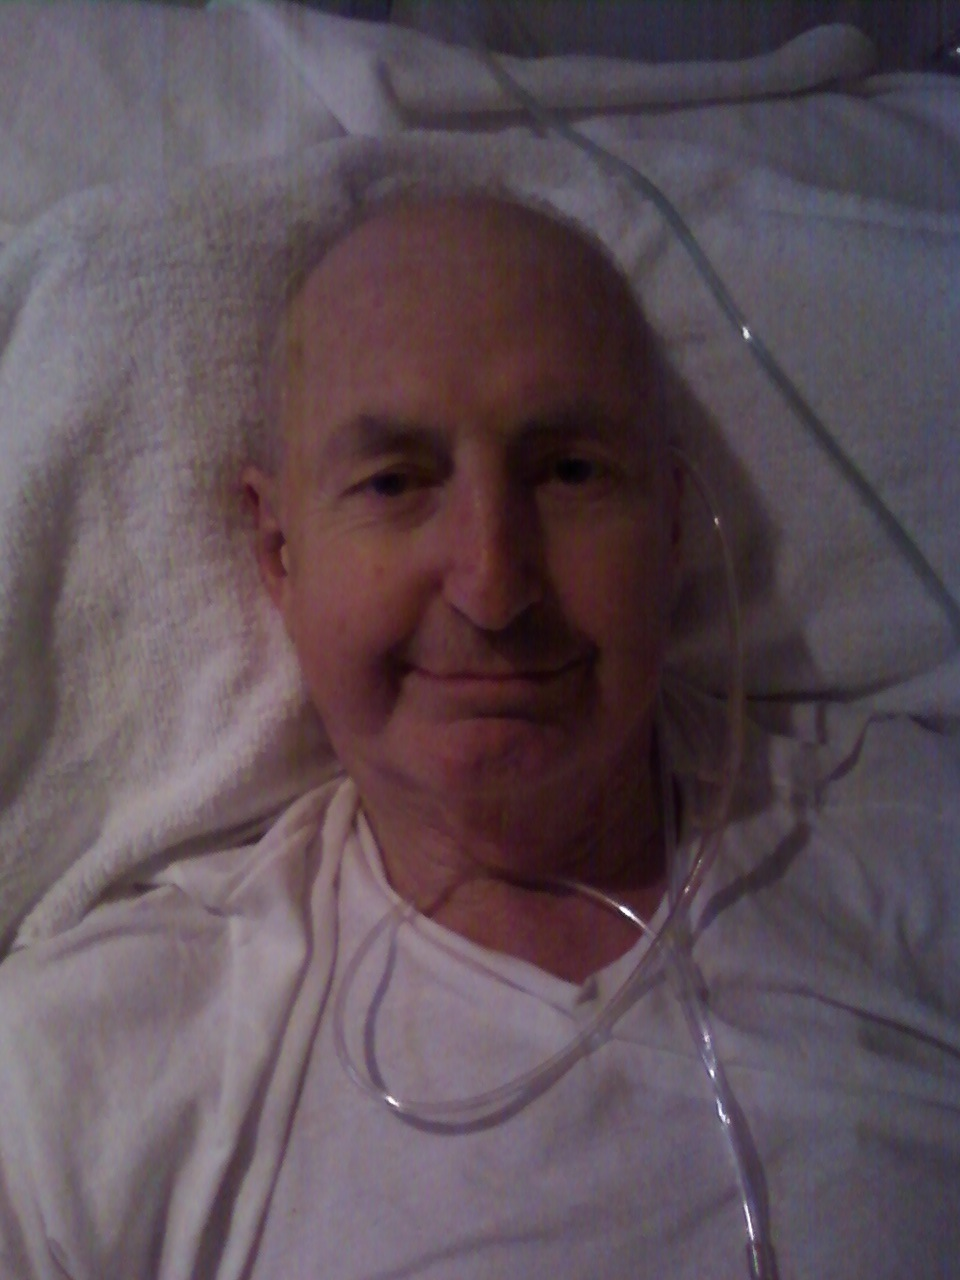 geoffrey mclennan  bec here it is now 1 30am dad is comfortable and very sleepy mum and i are here in the room him for the night he felt that we needed to be